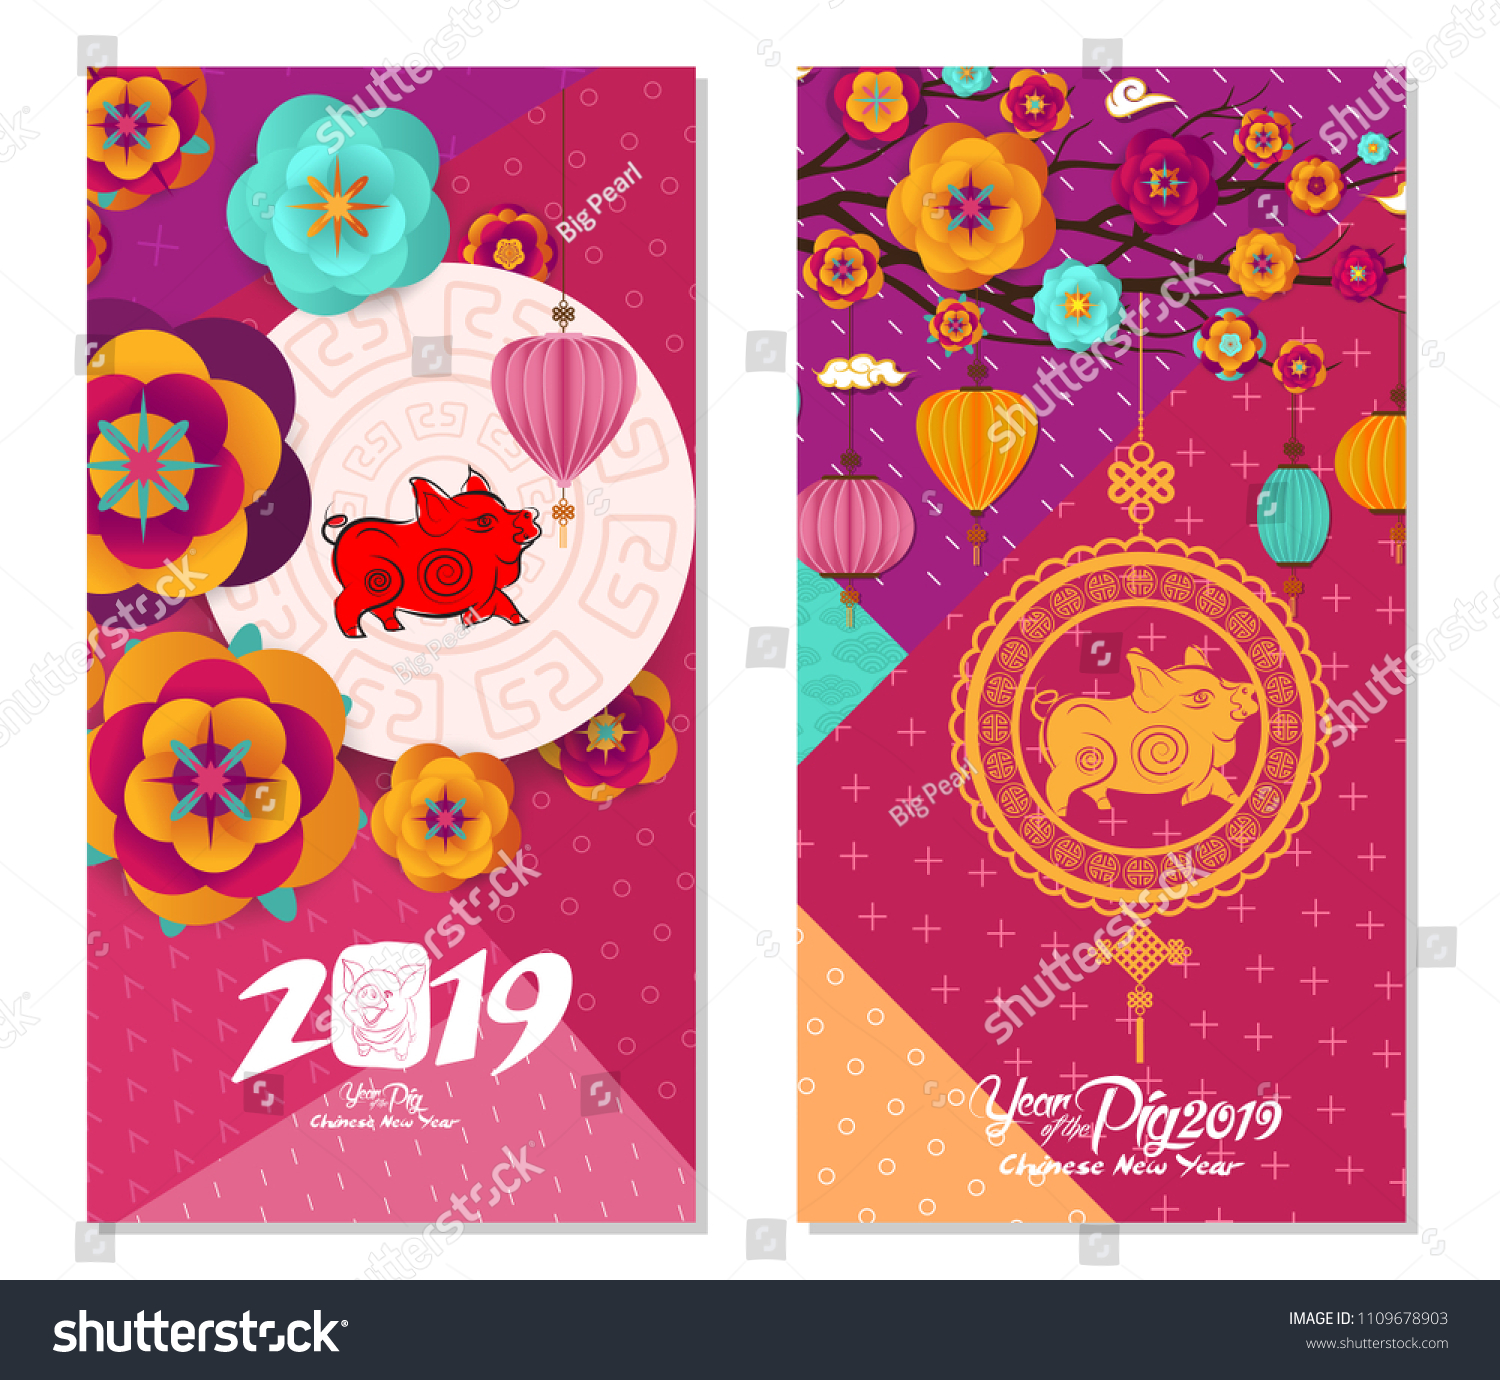 2019 Chinese New Year Greeting Card, Two Sides Poster, Flyer